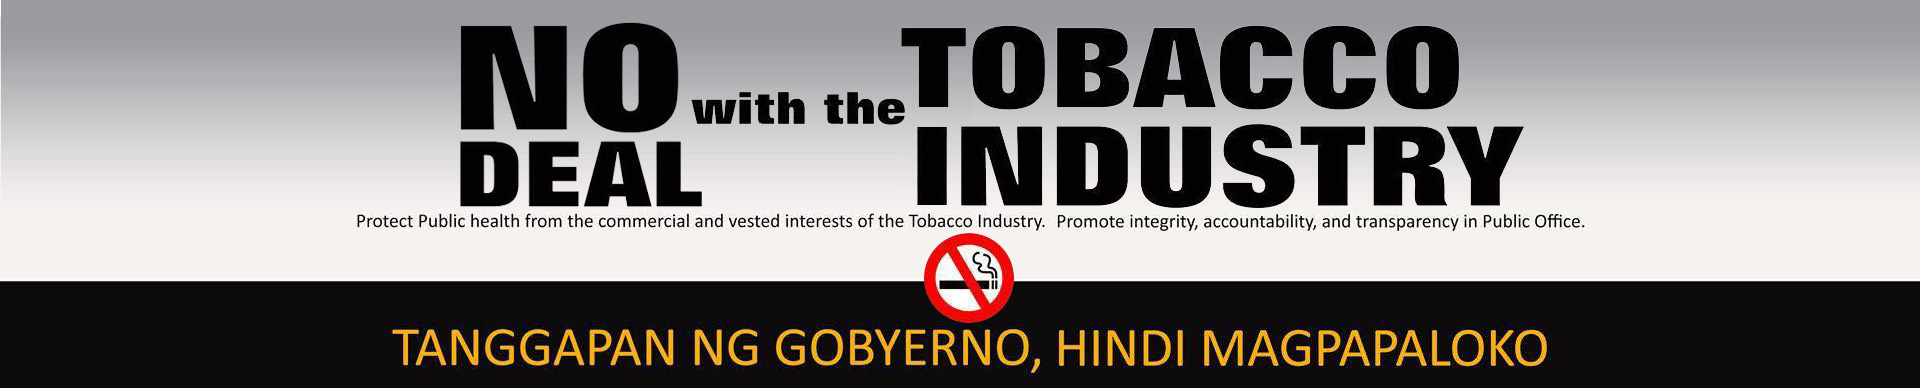 no deal tobacco industry 01